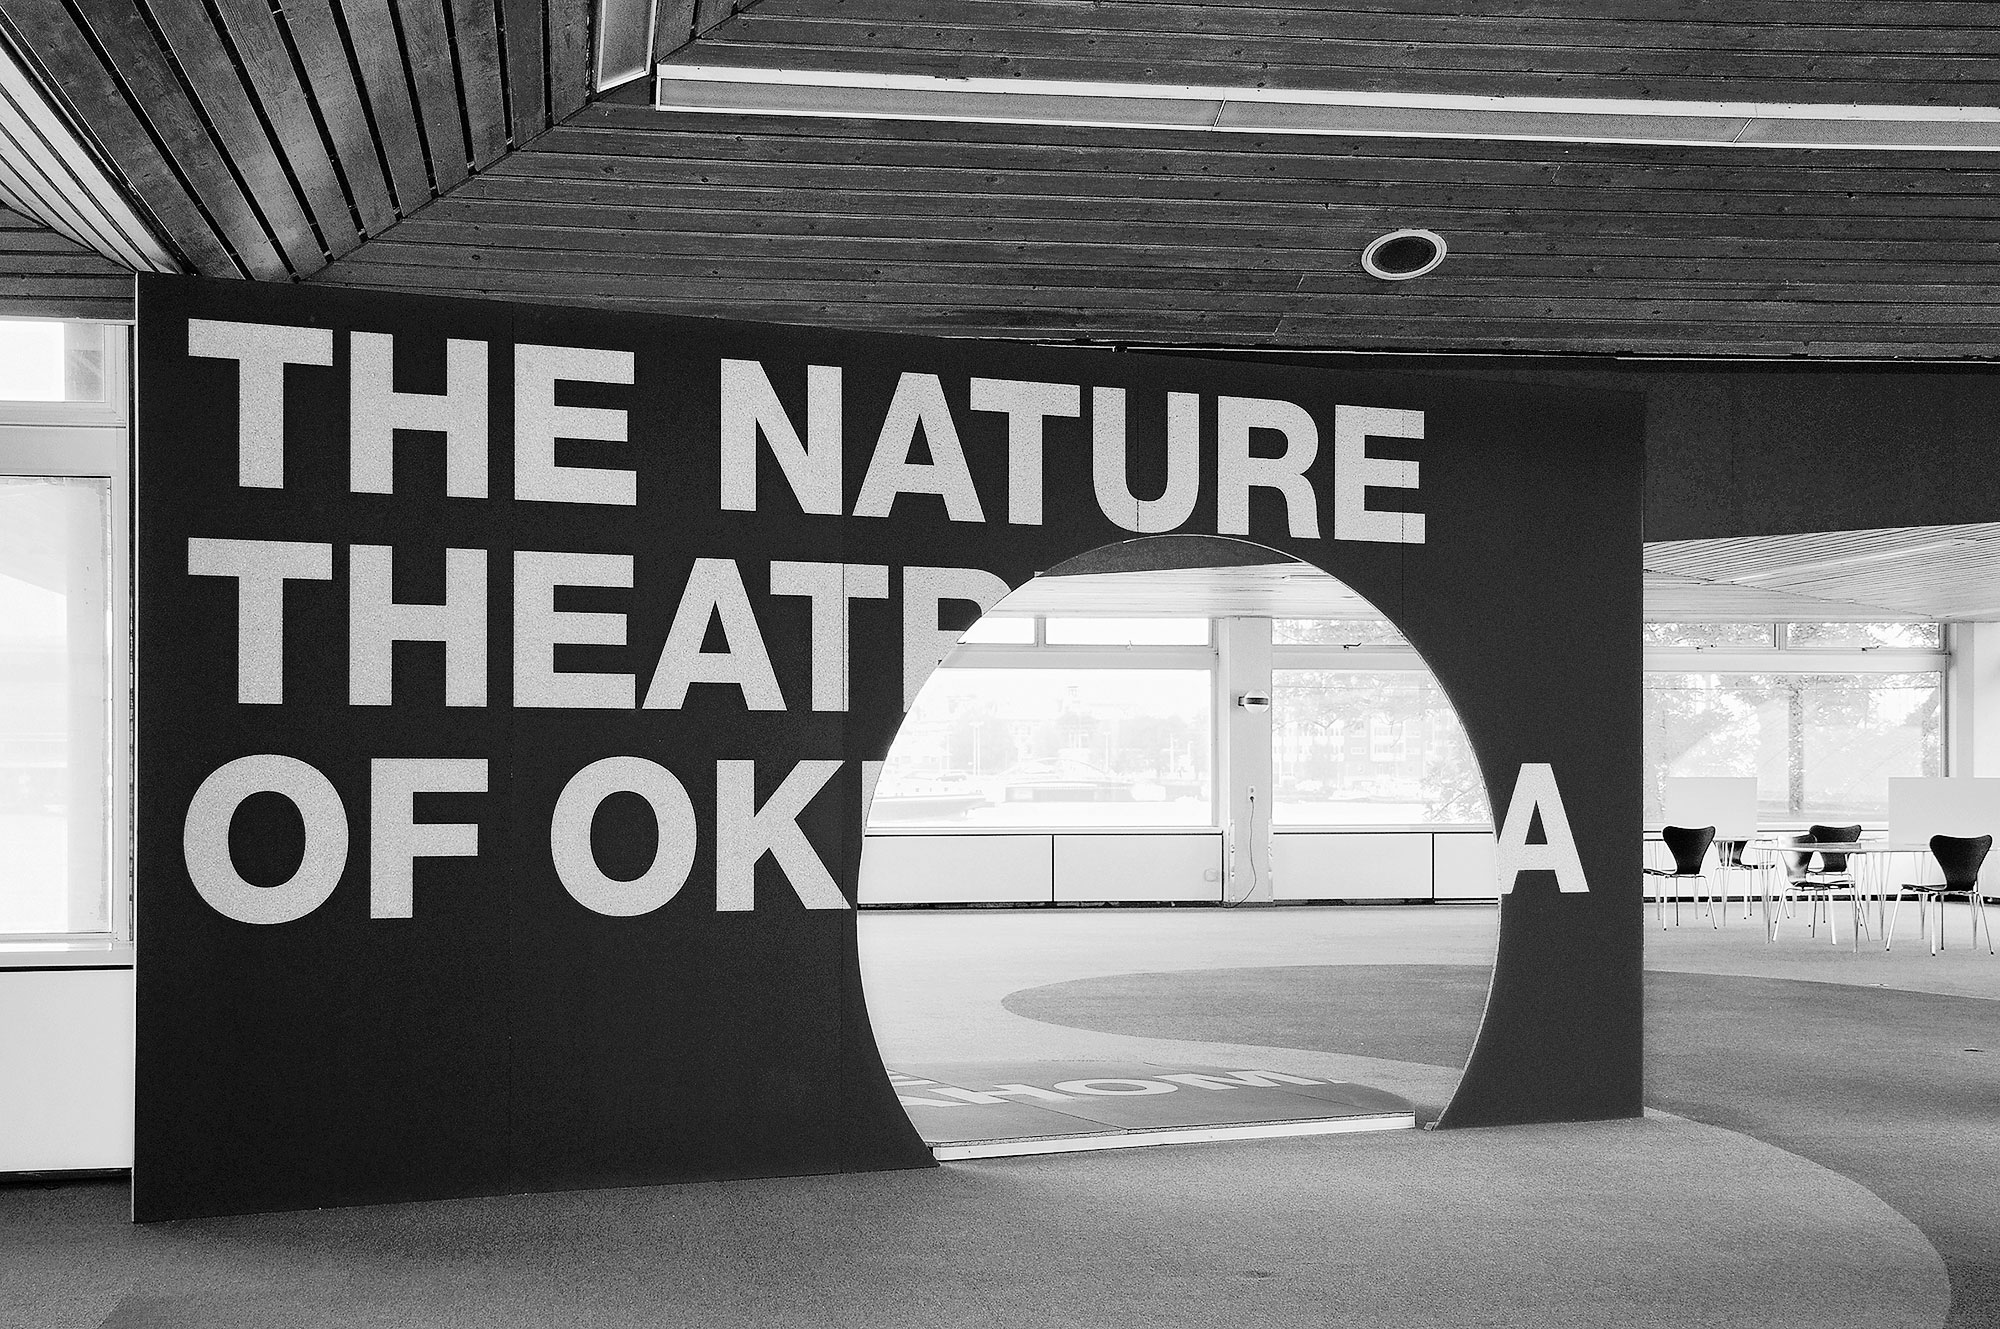 Famed, The Nature Theatre of Oklahoma [Spatial Reconfiguration #10], 2009